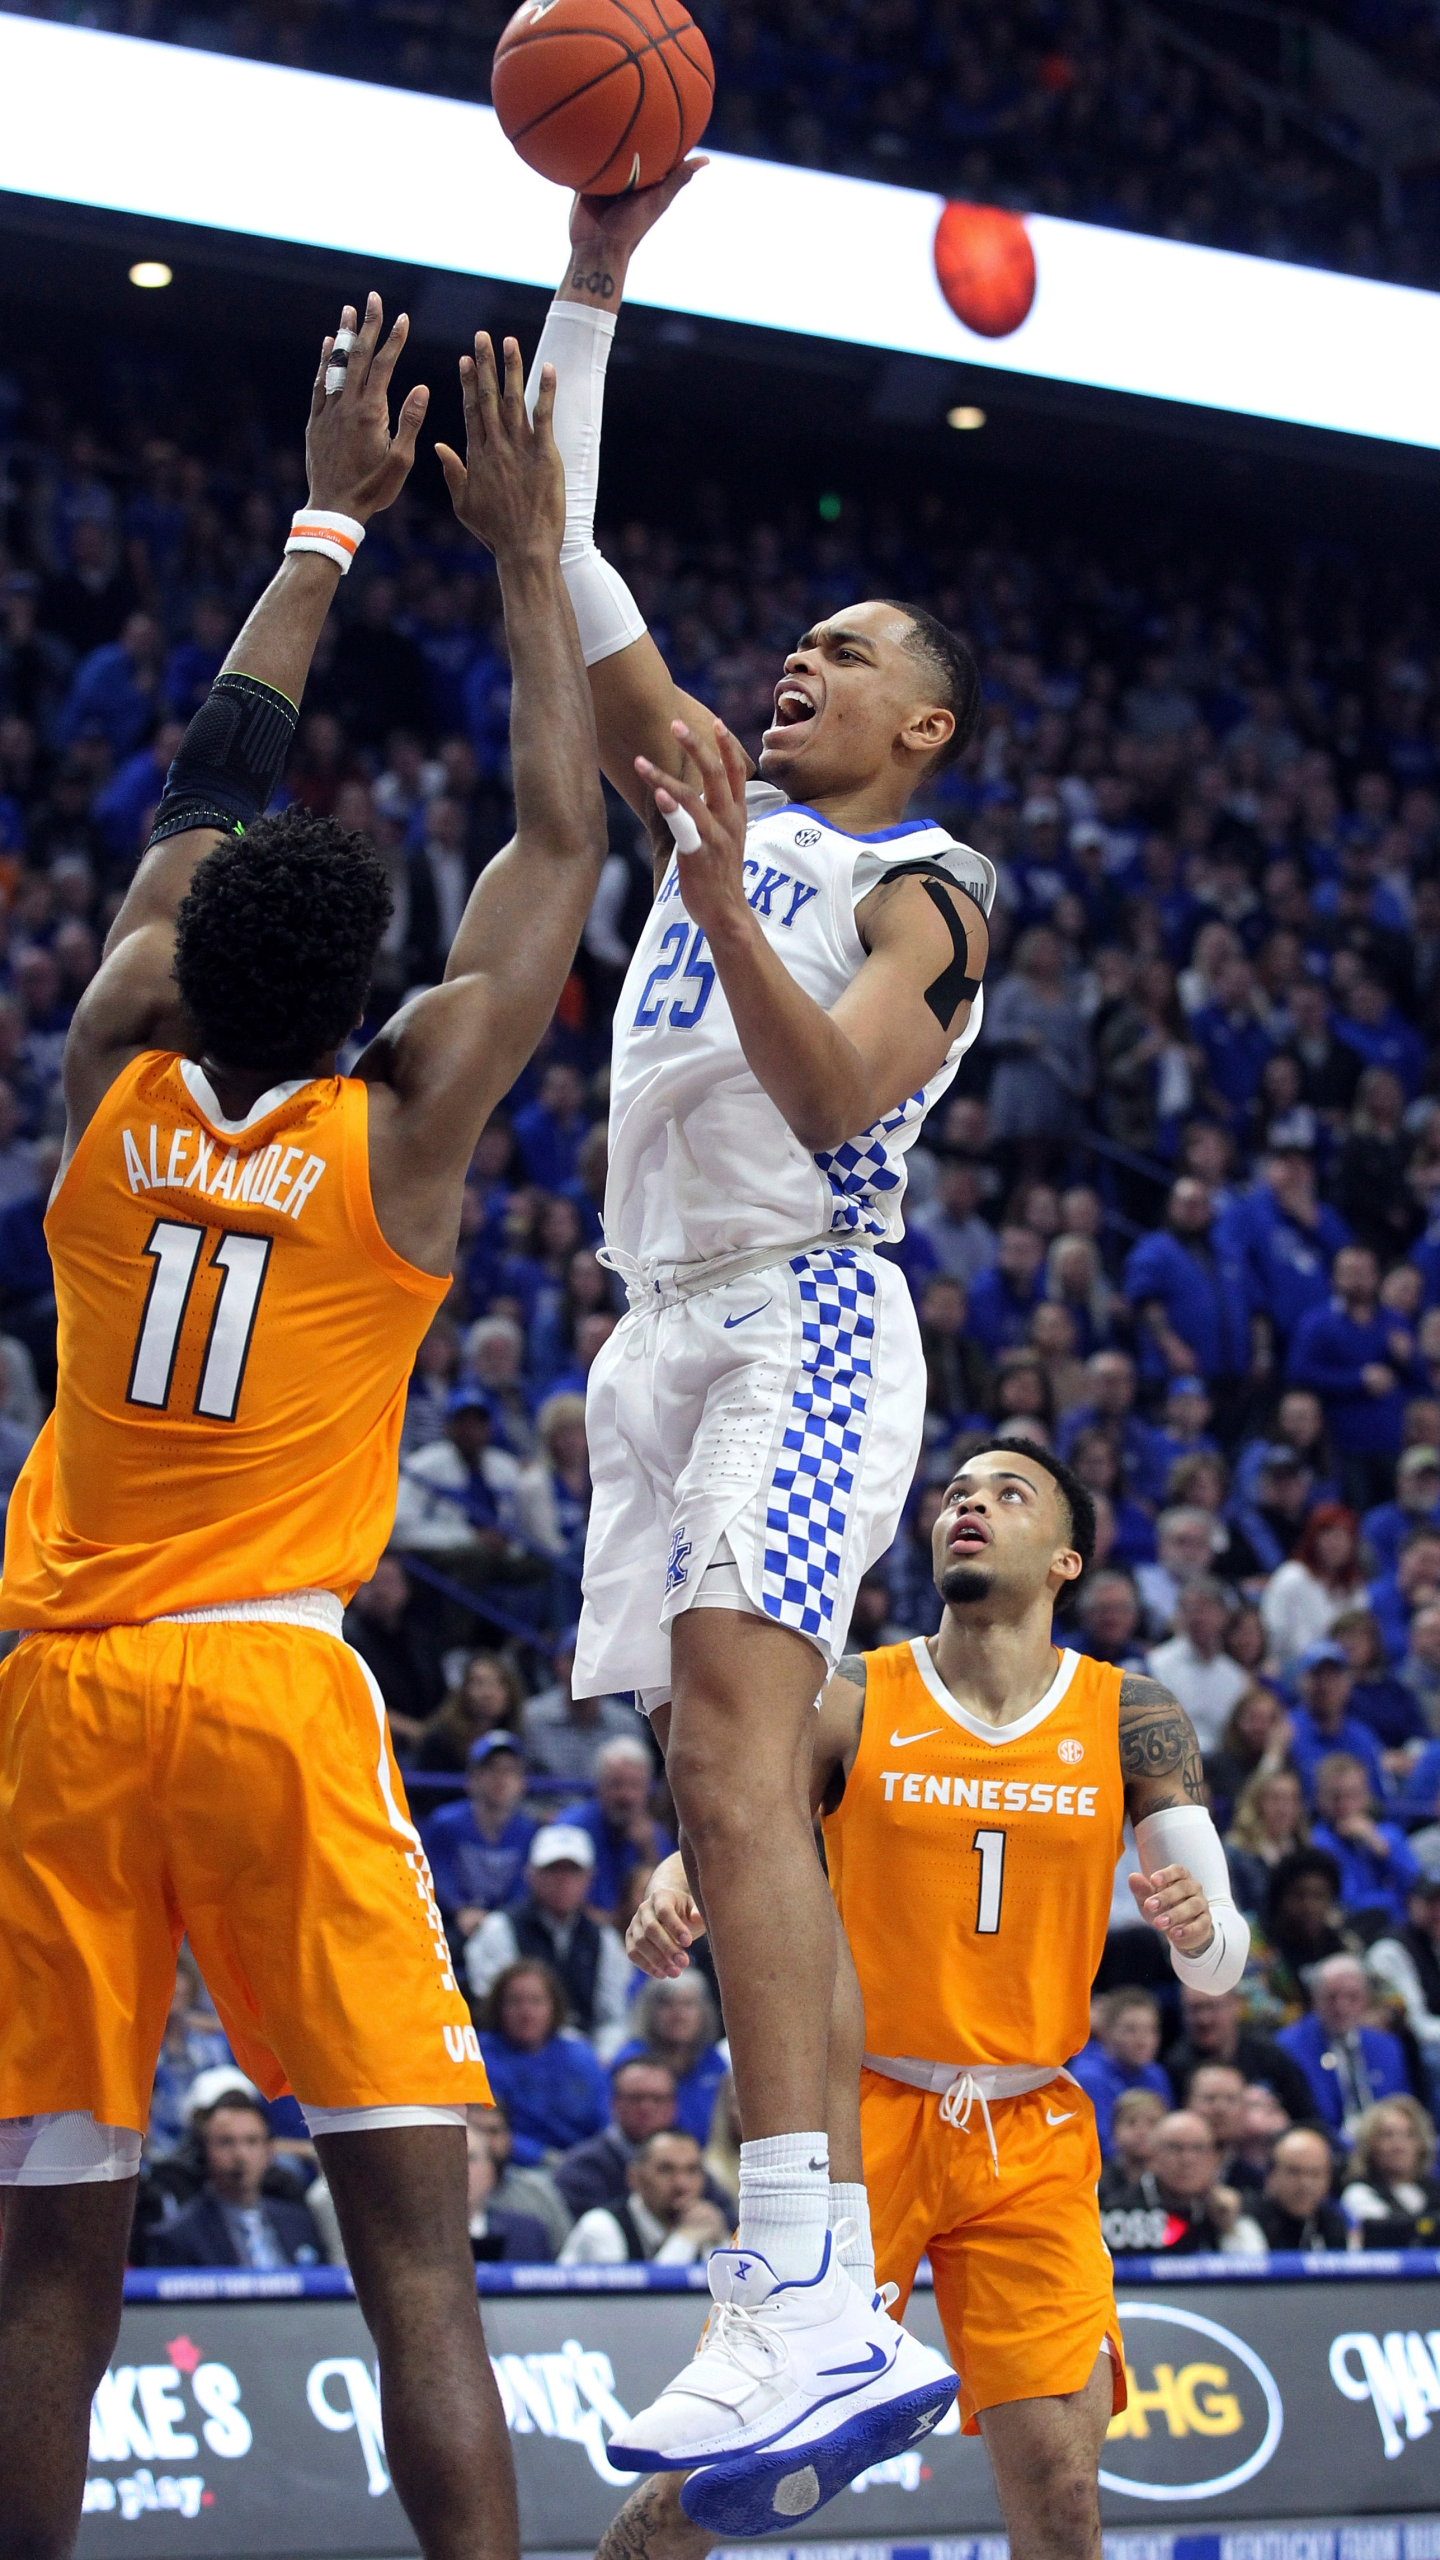 Tennessee Kentucky Basketball_1550380461803